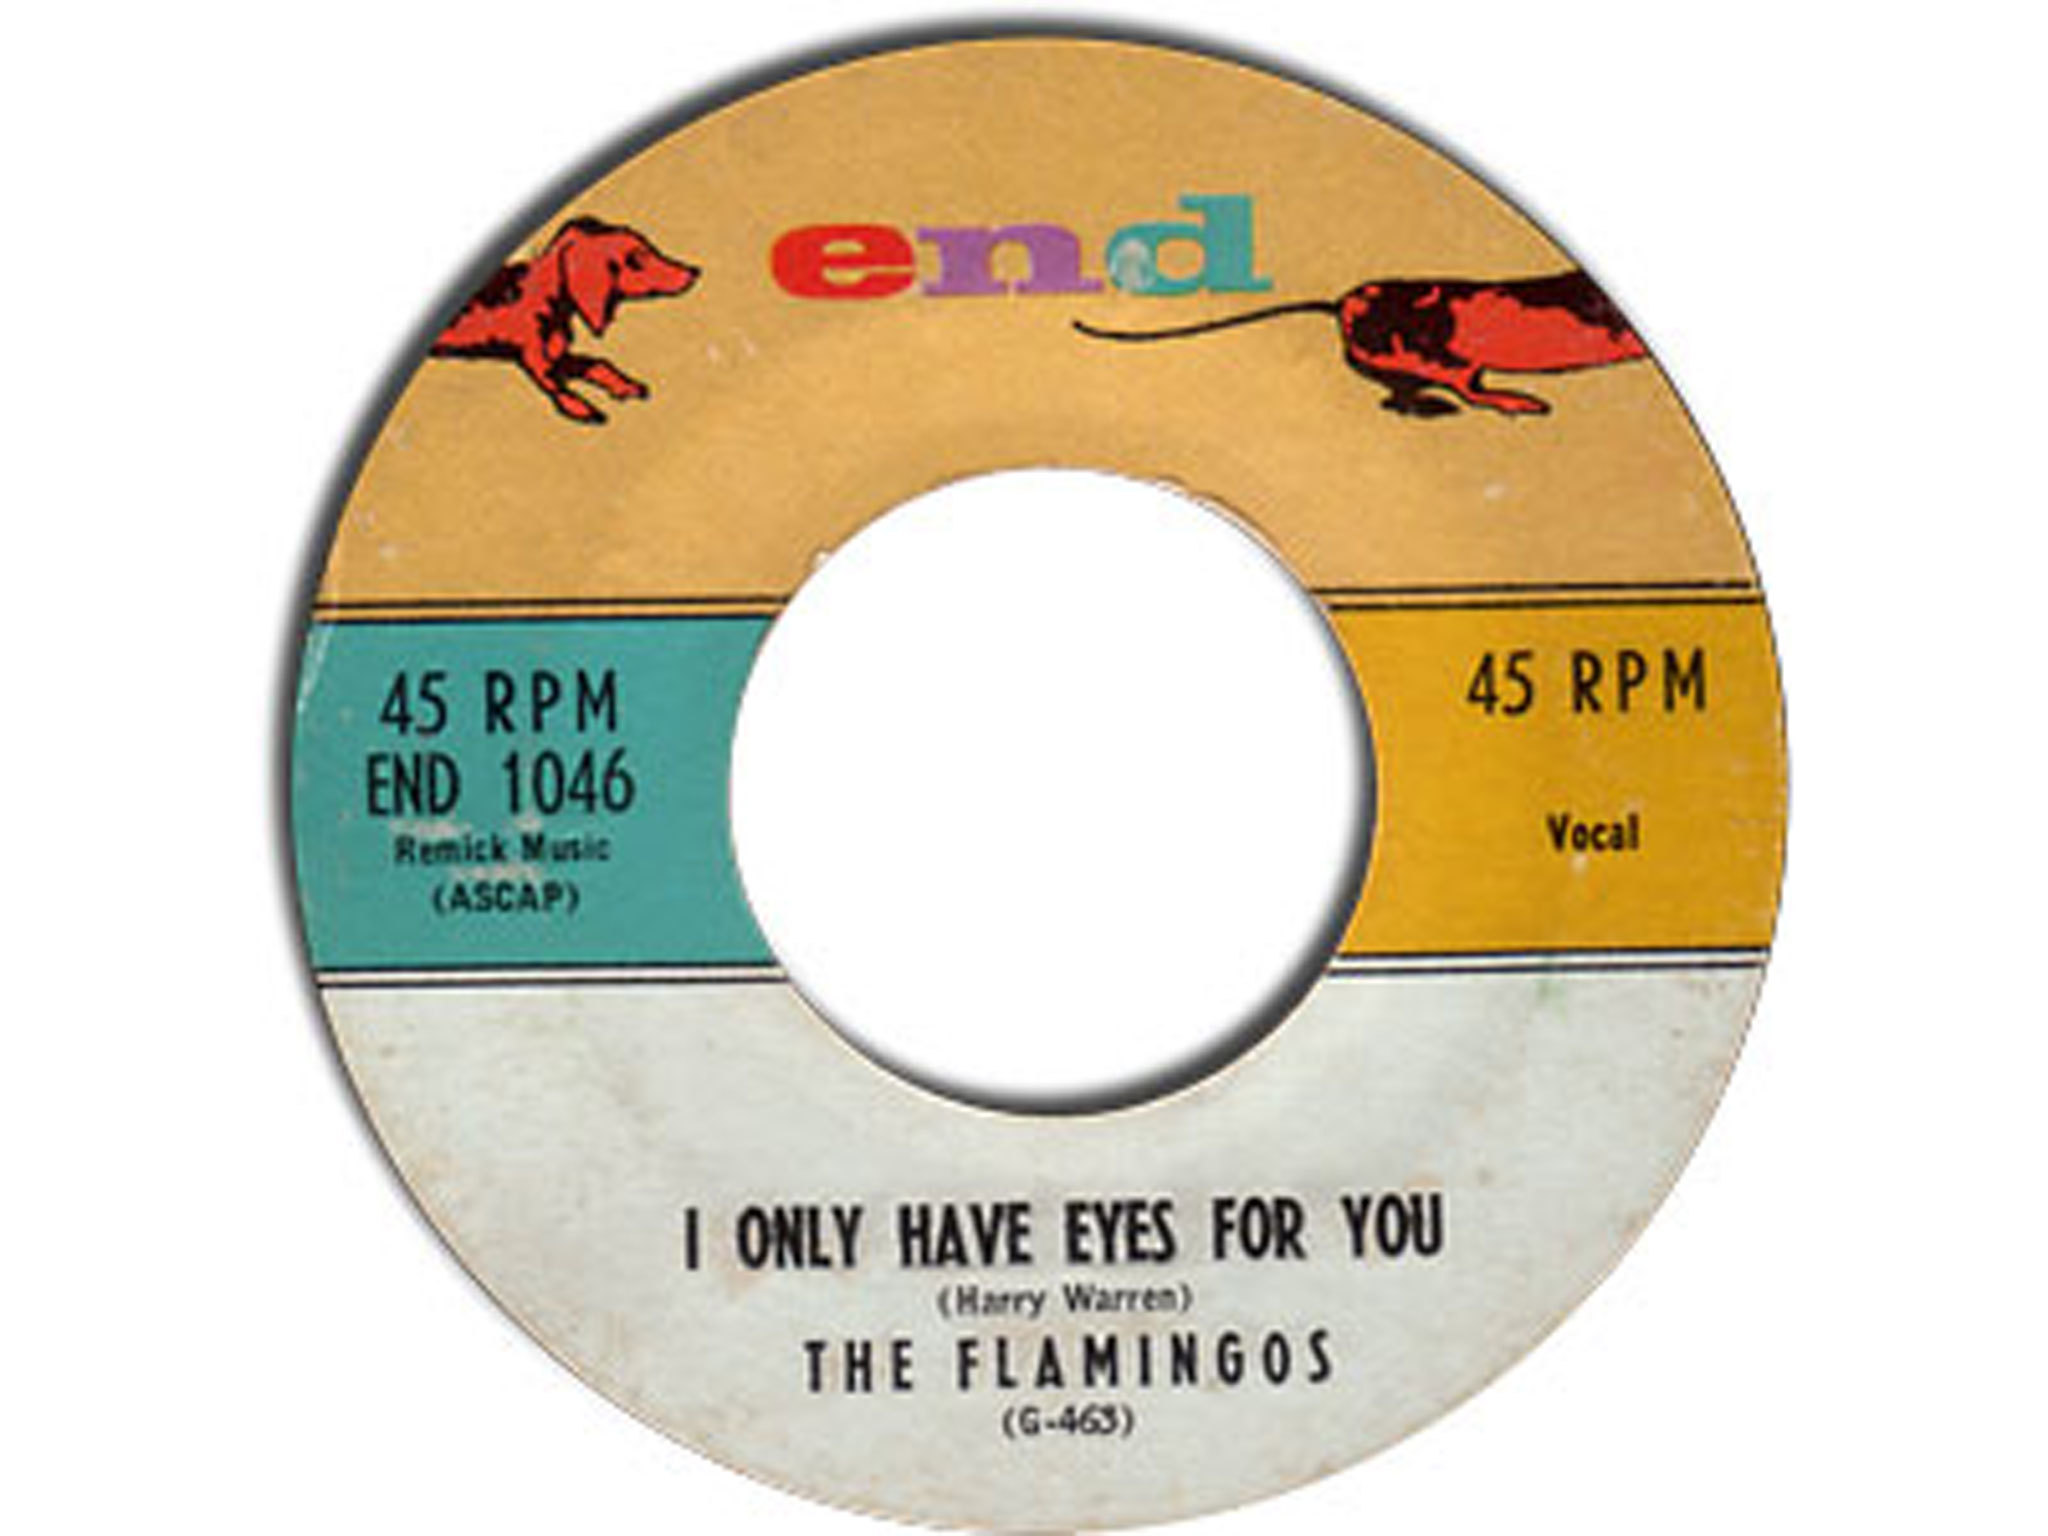 I only have eyes for you, The Flamingoes, best soul songs